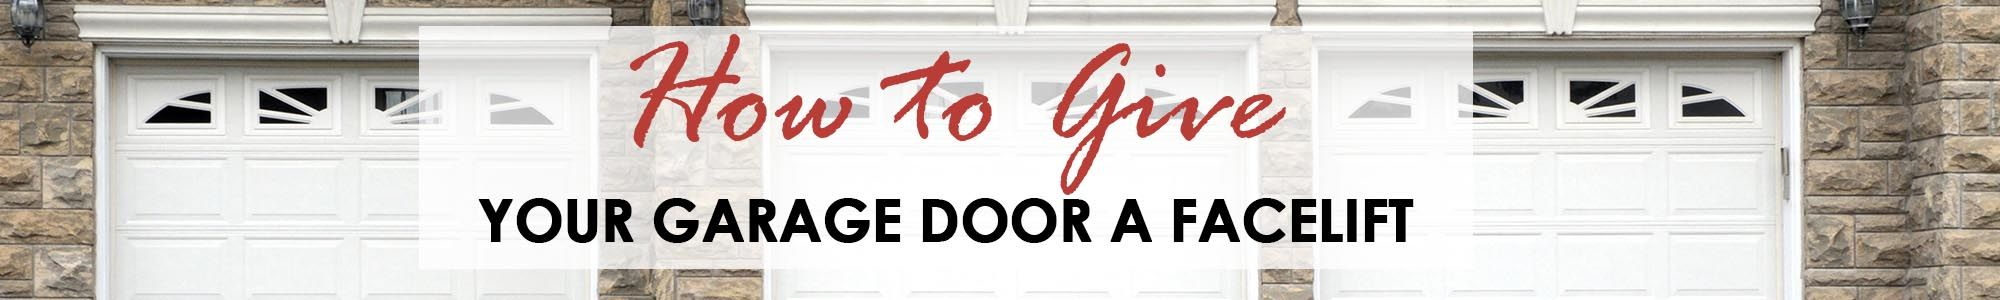 How to Give Your Garage Door a Facelift